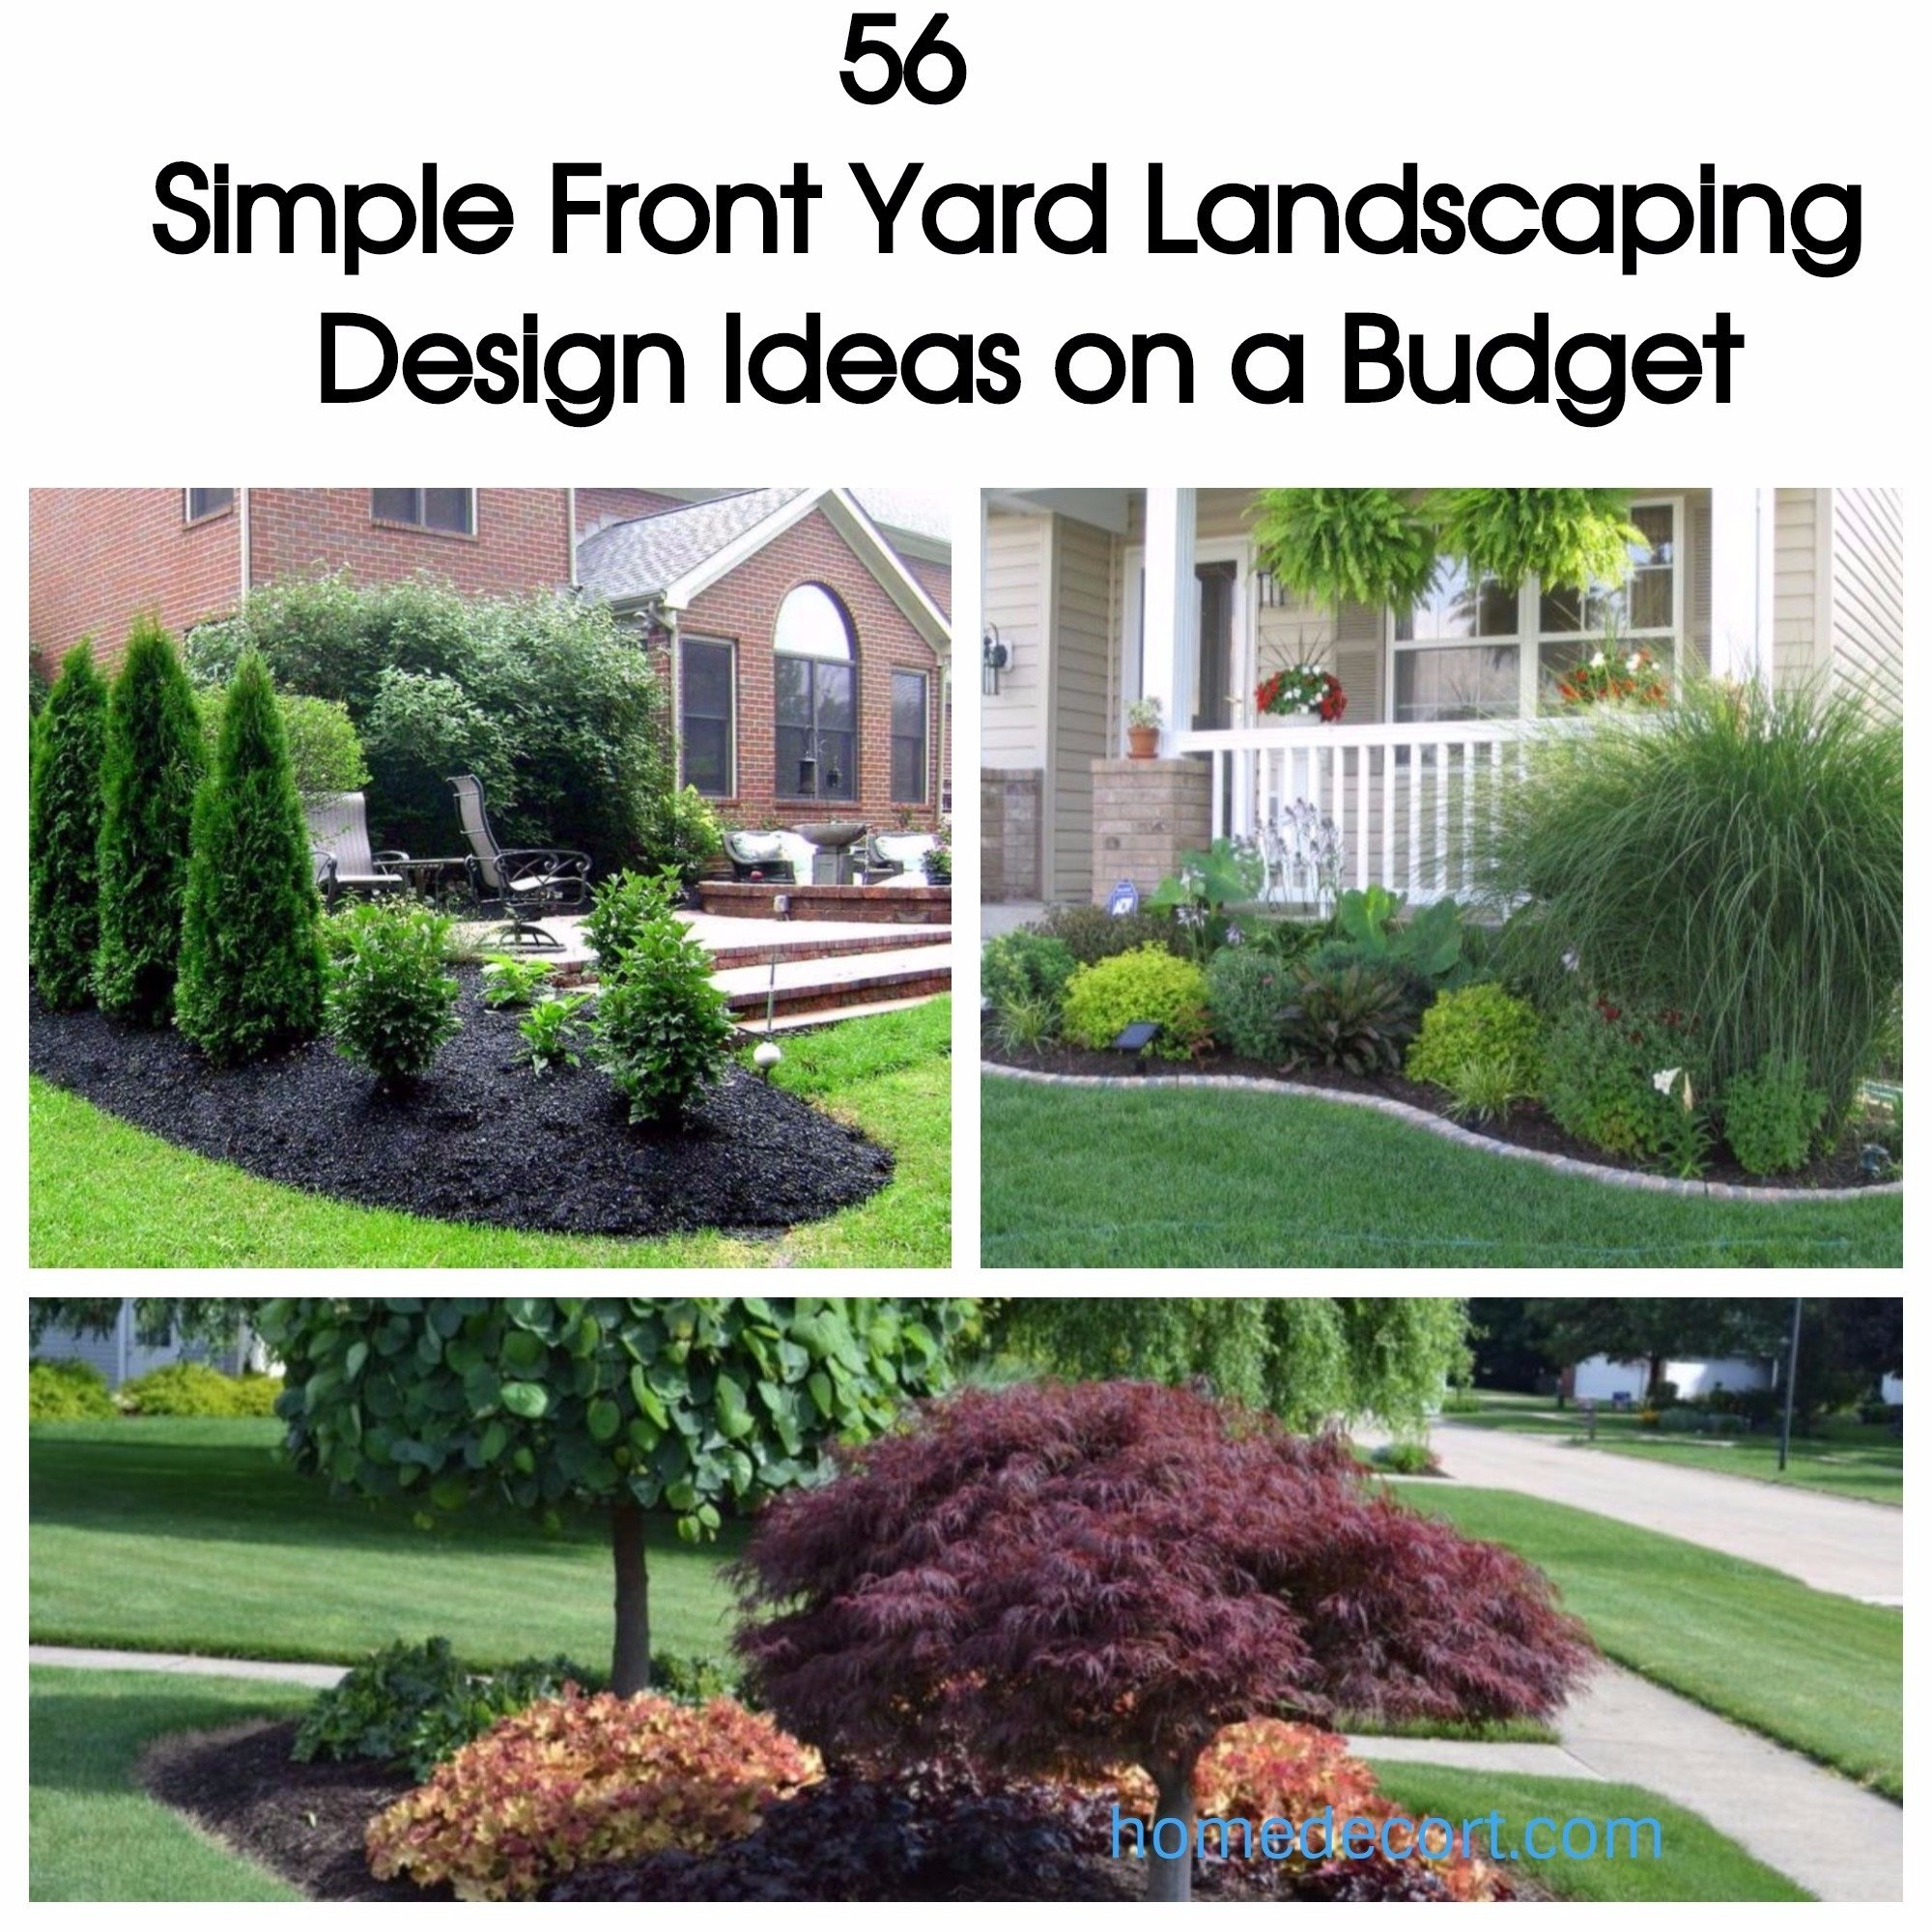 10 Stylish Simple Front Yard Landscaping Ideas On A Budget 56 simple front yard landscaping design ideas on a budget homedecort 2021